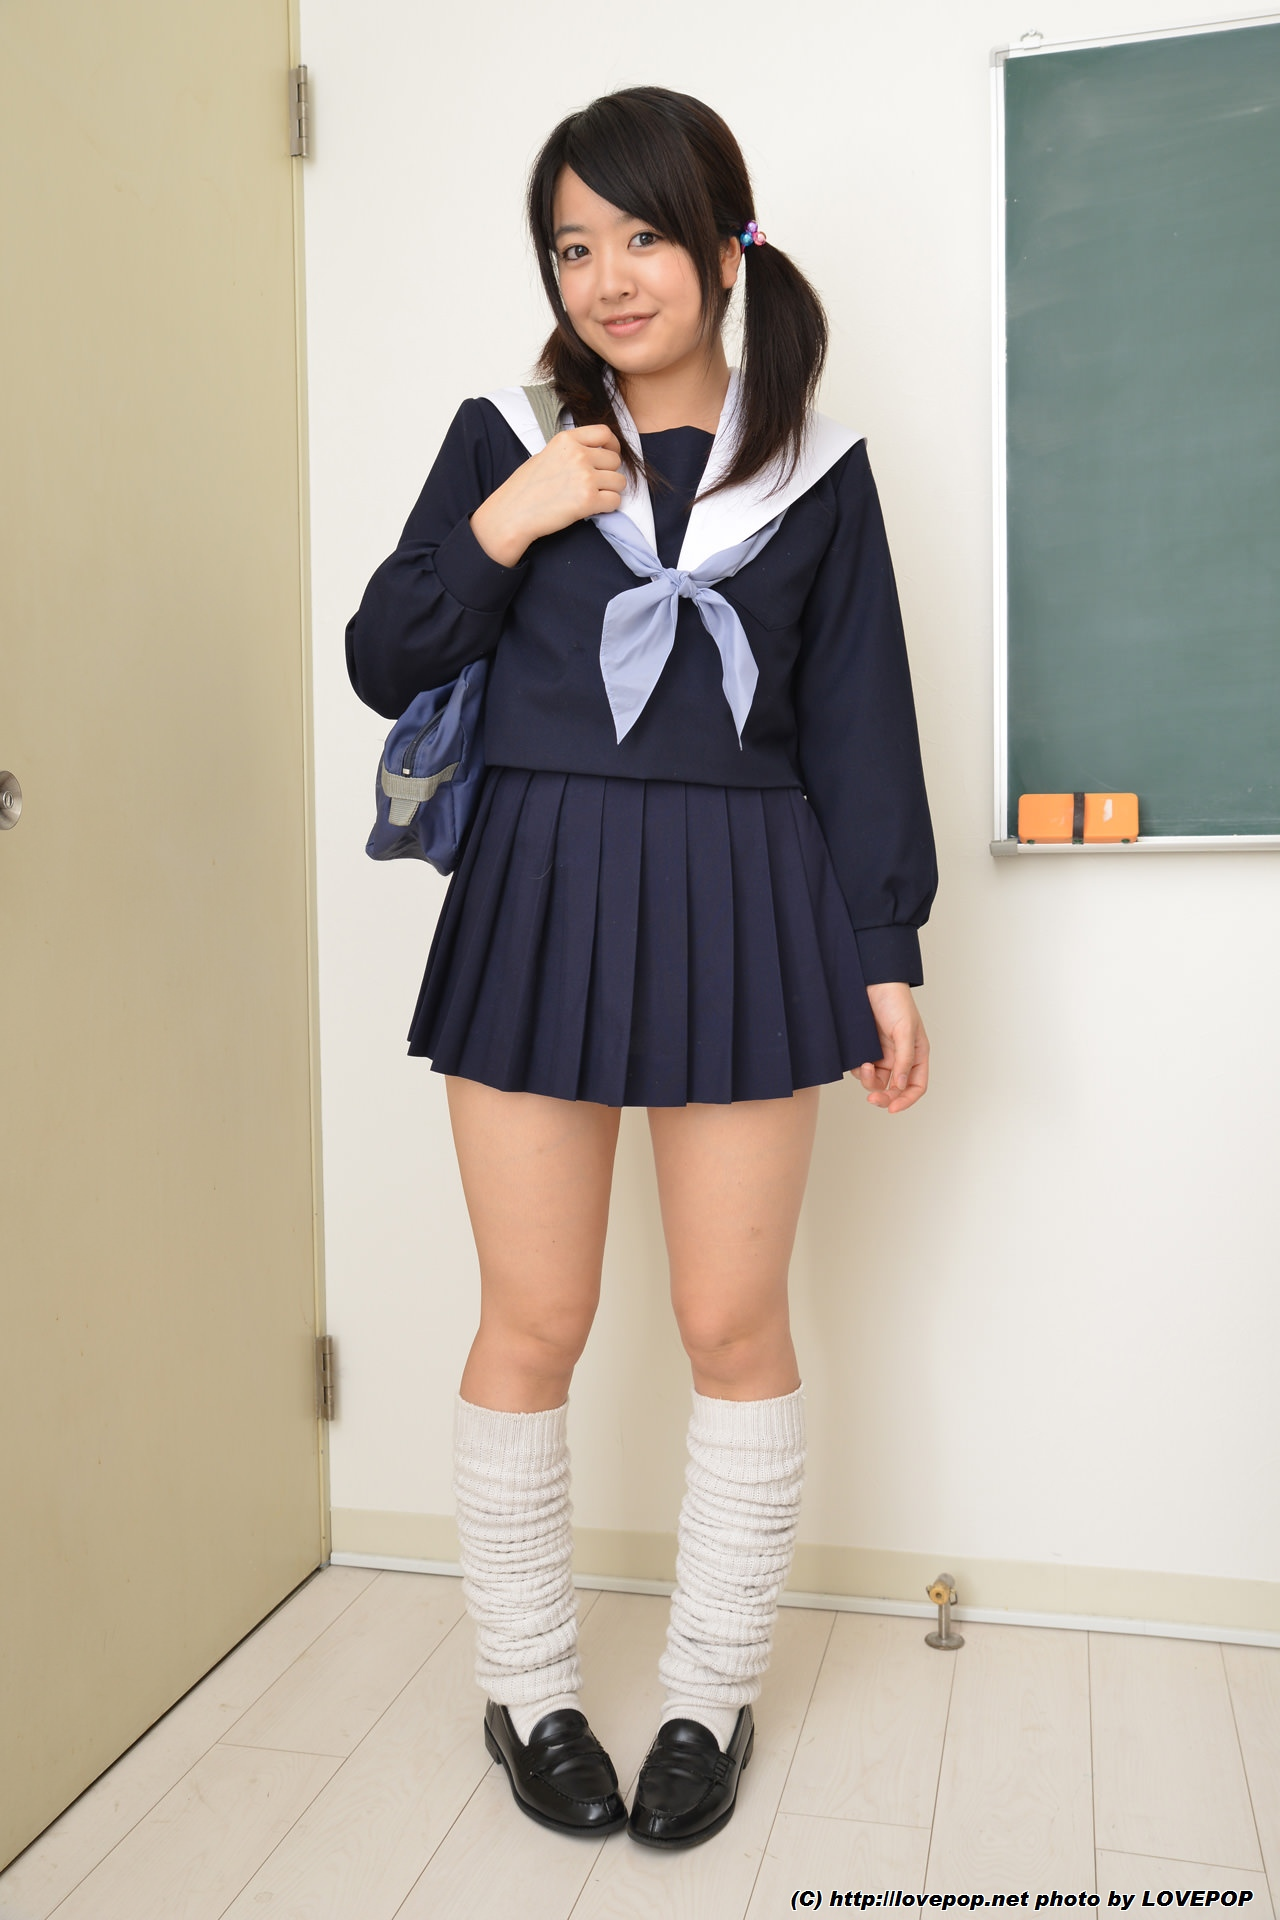 free-mobile-japanese-school-teen-videos-asian-girl-singing-i-will-always-love-you